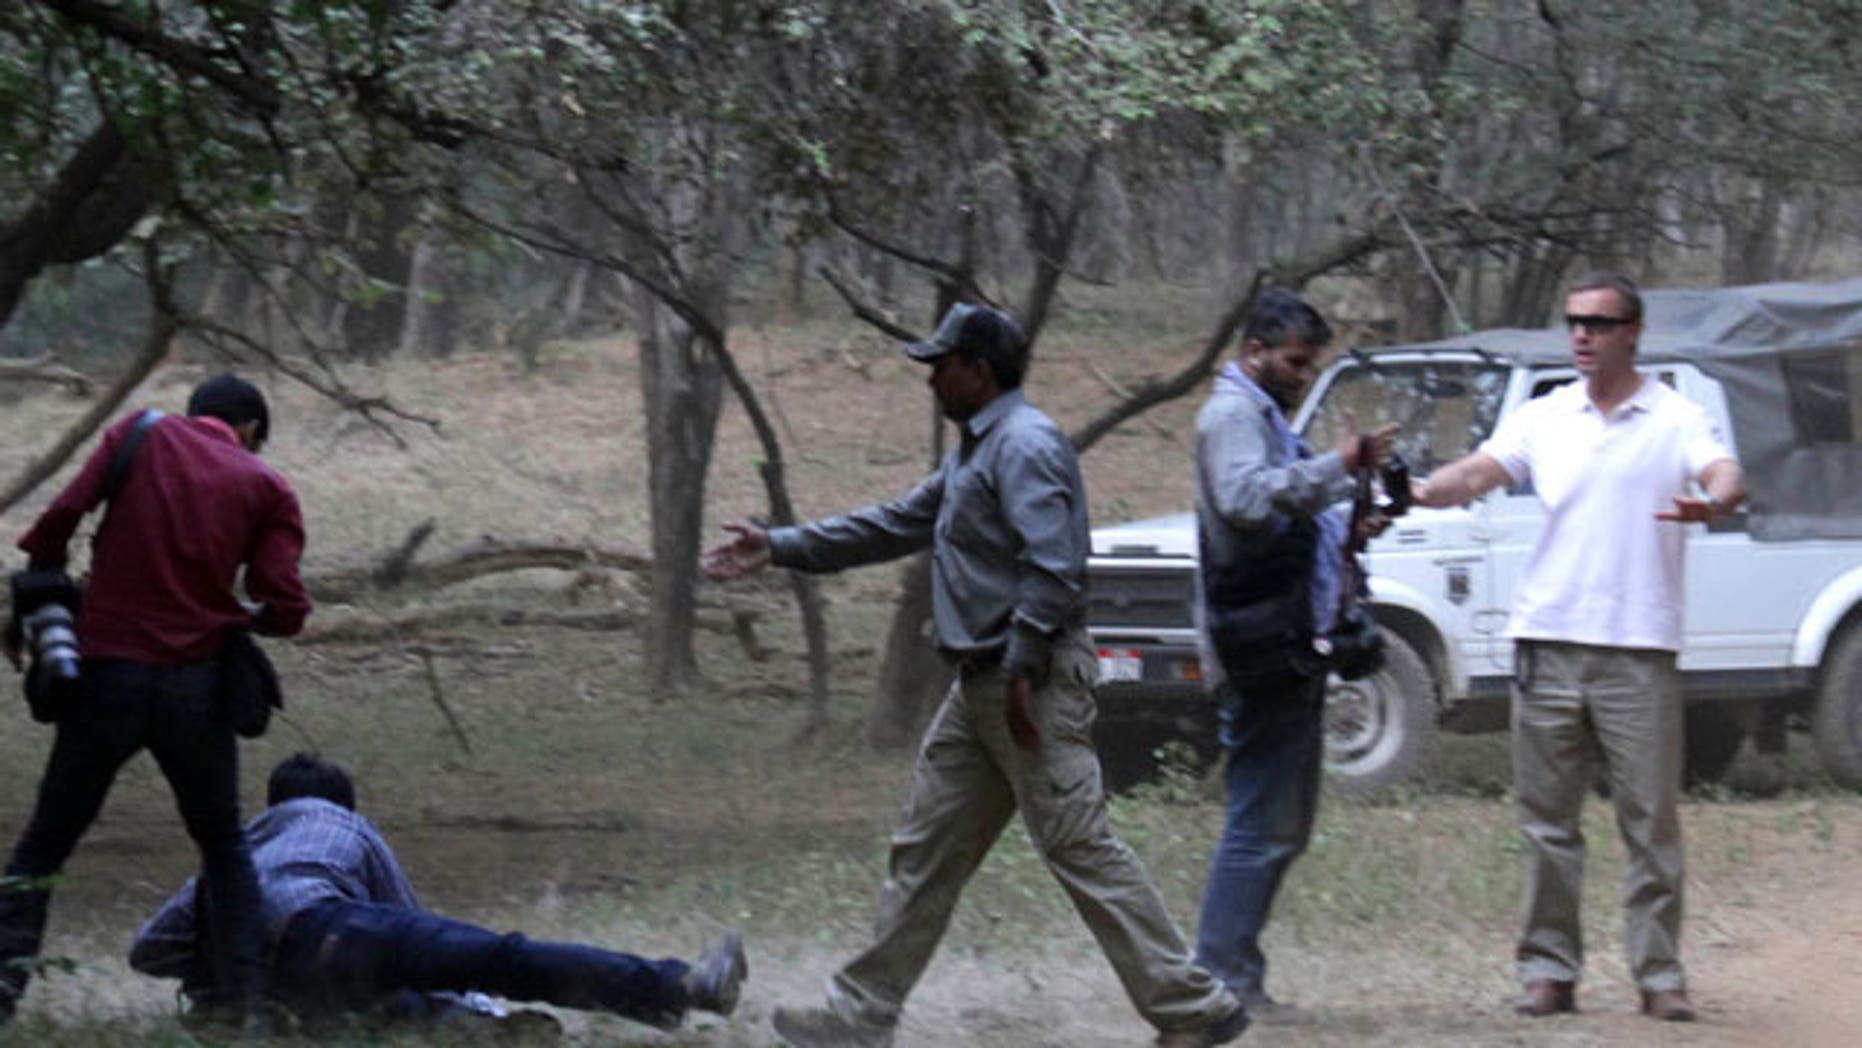 Oct. 22: An AP photographer captured images of an altercation between Brand's entourage and photographers in India.